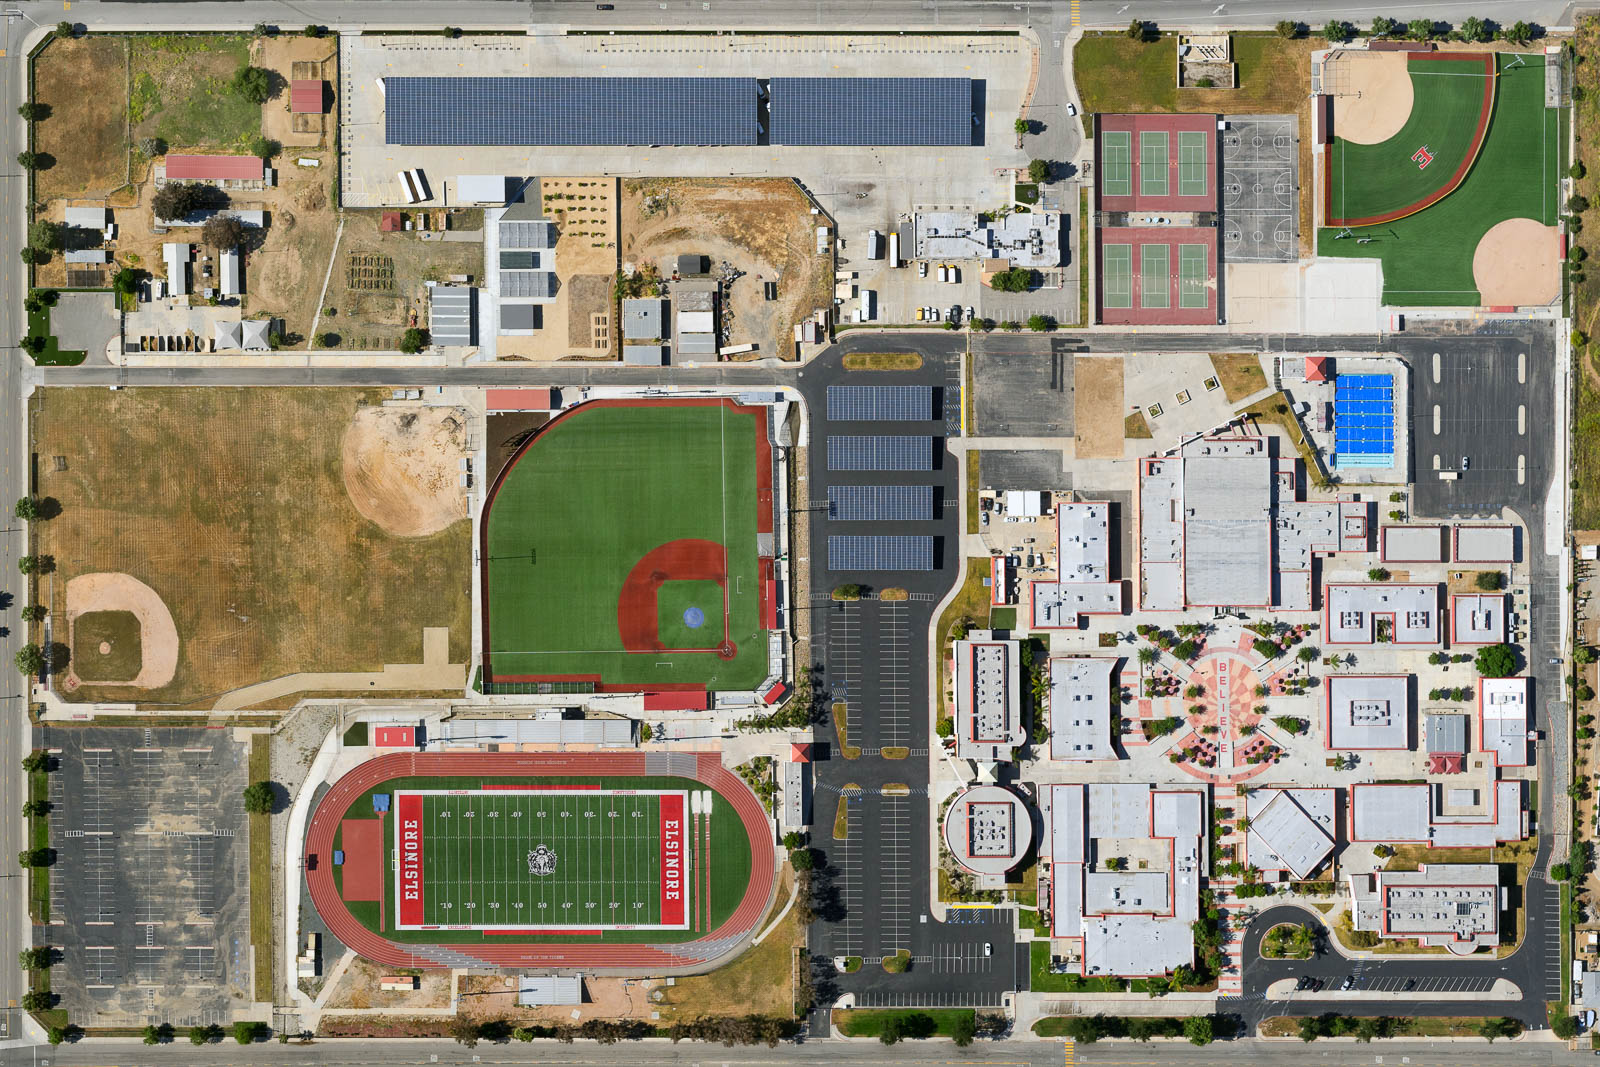 Elsinore High School in Wildomar, California remains closed since the beginning of the pandemic (May 2020)